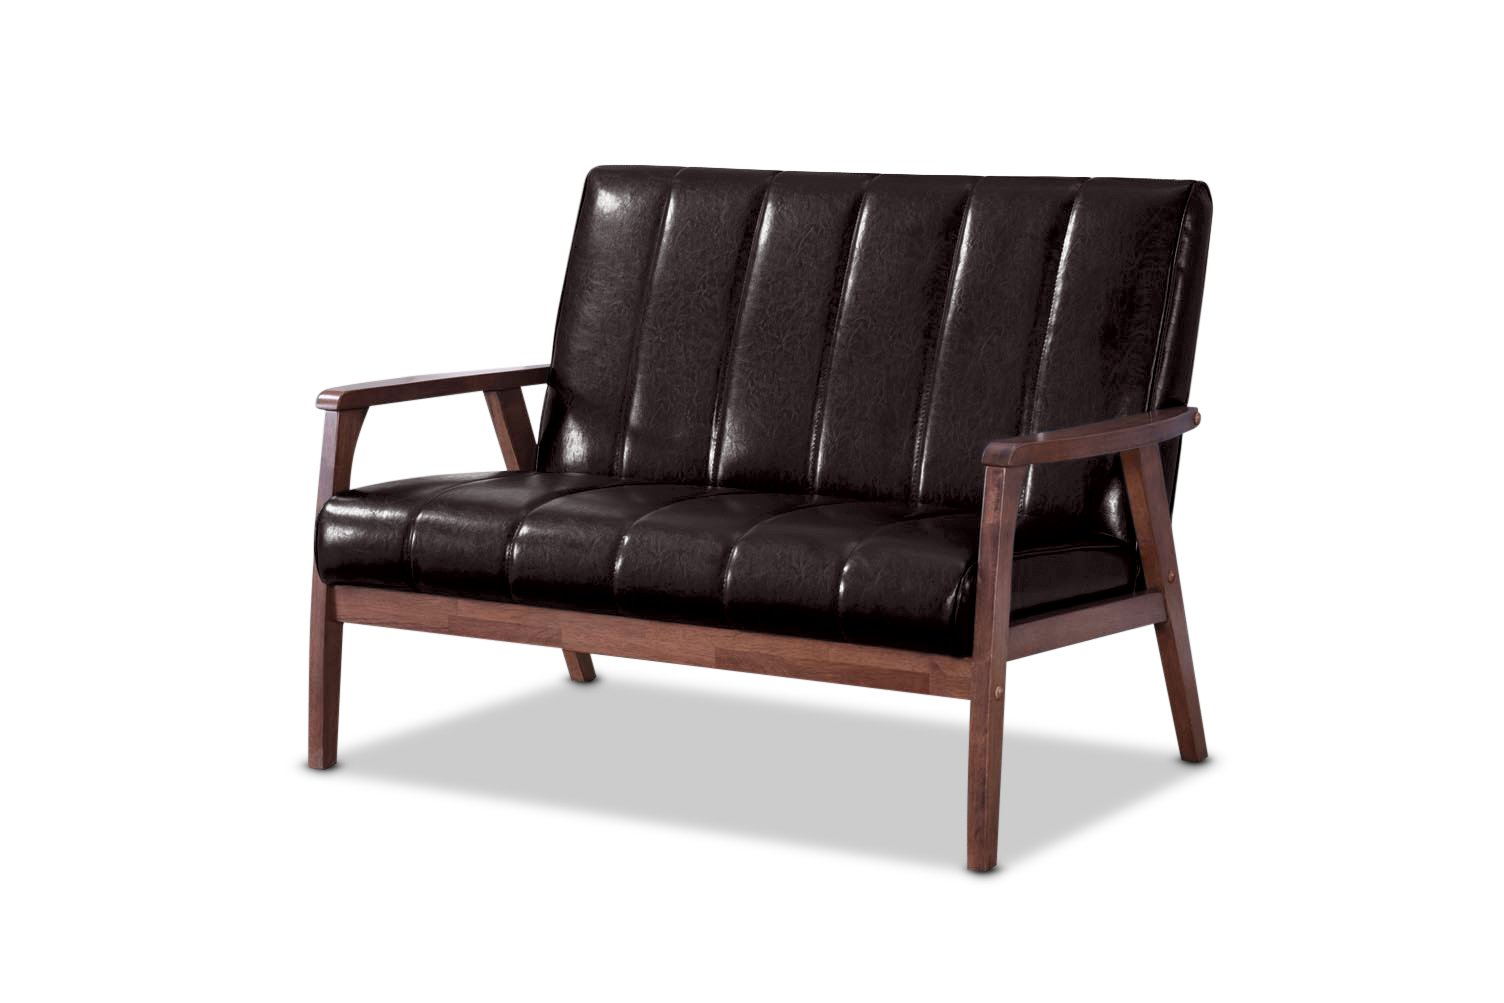 Baxton Studio Nikko Mid-Century Modern Scandinavian Style Dark Brown Faux Leather Wooden 2-Seater Loveseat by Baxton Studio